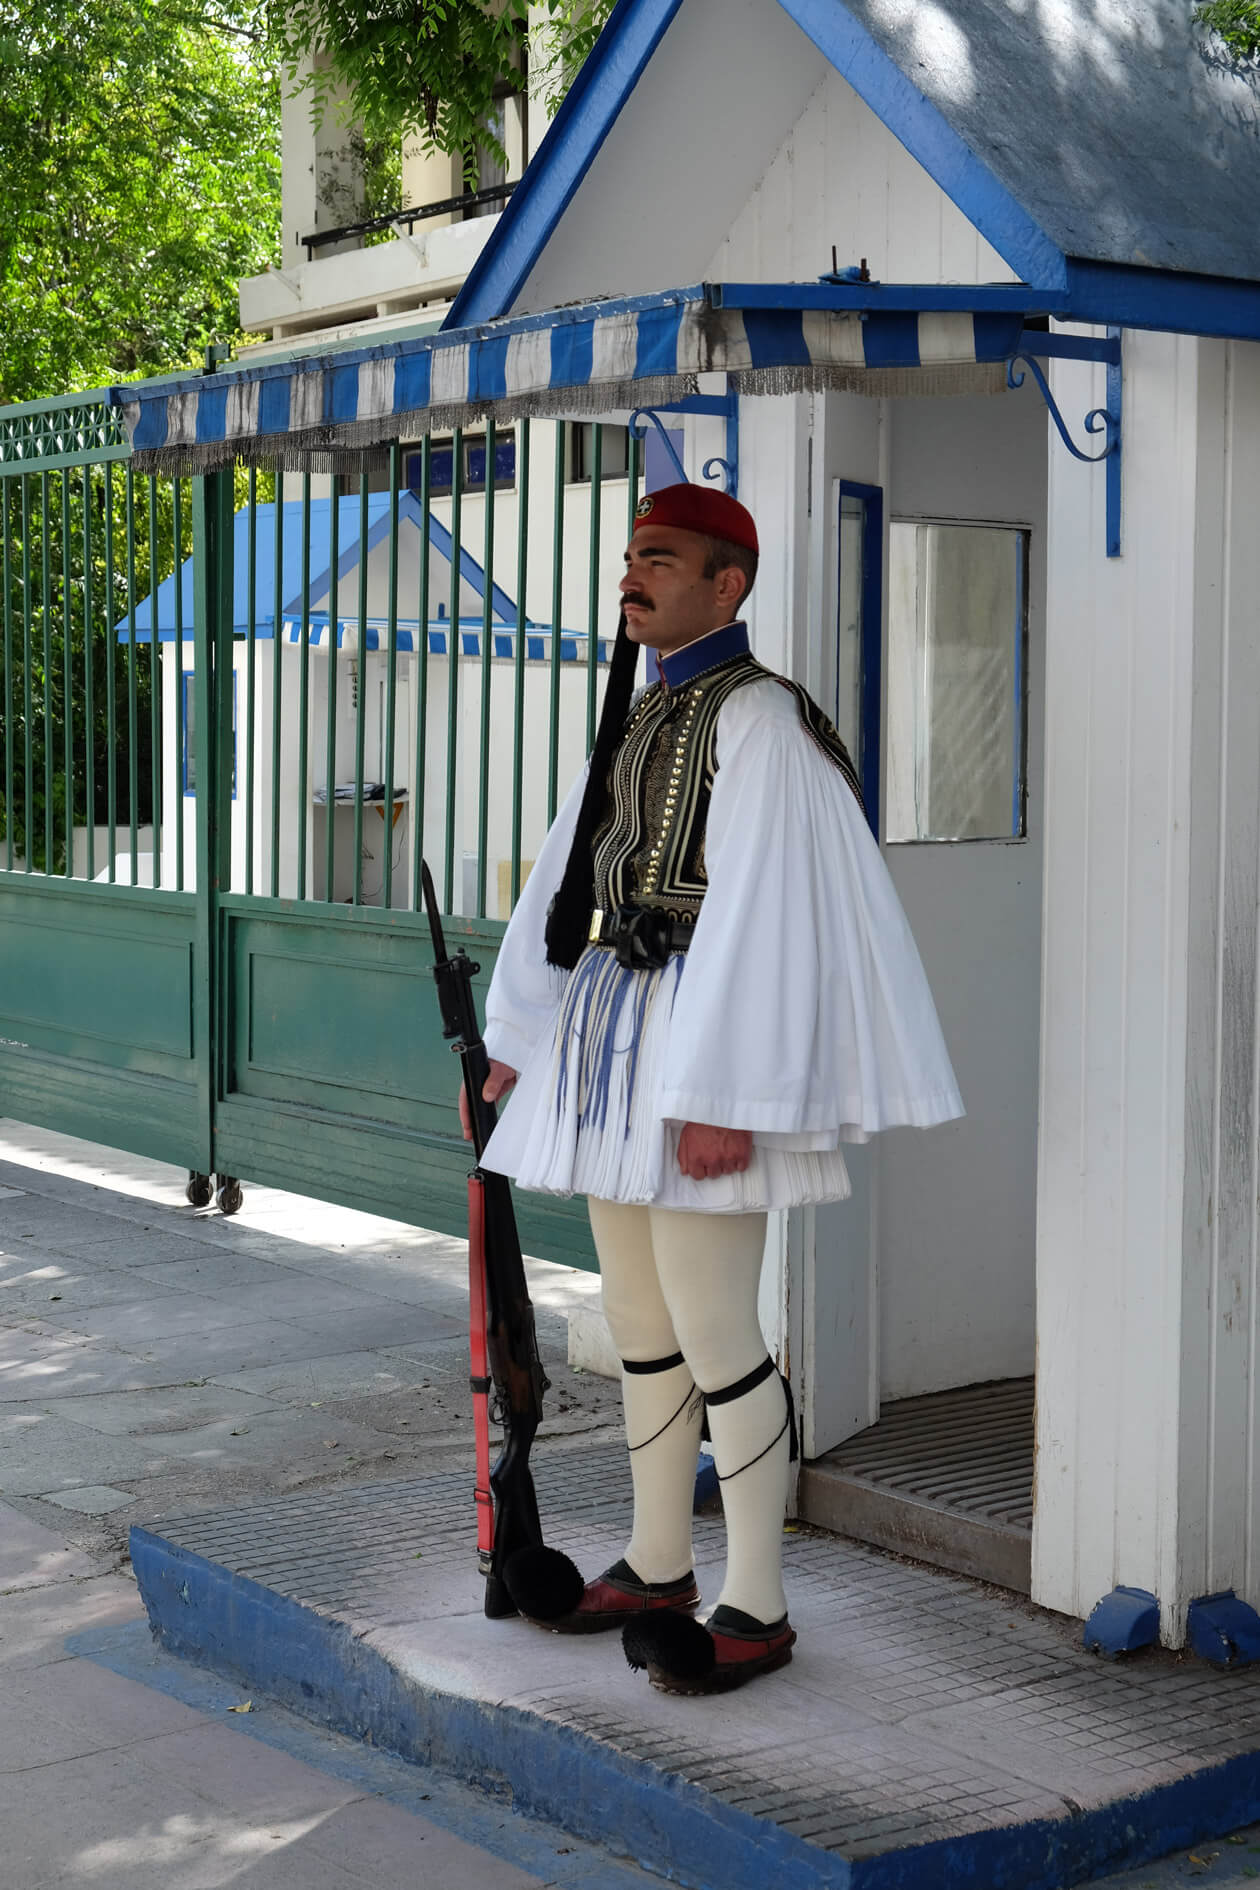 A Presidential Guard, or Evzone, at his post